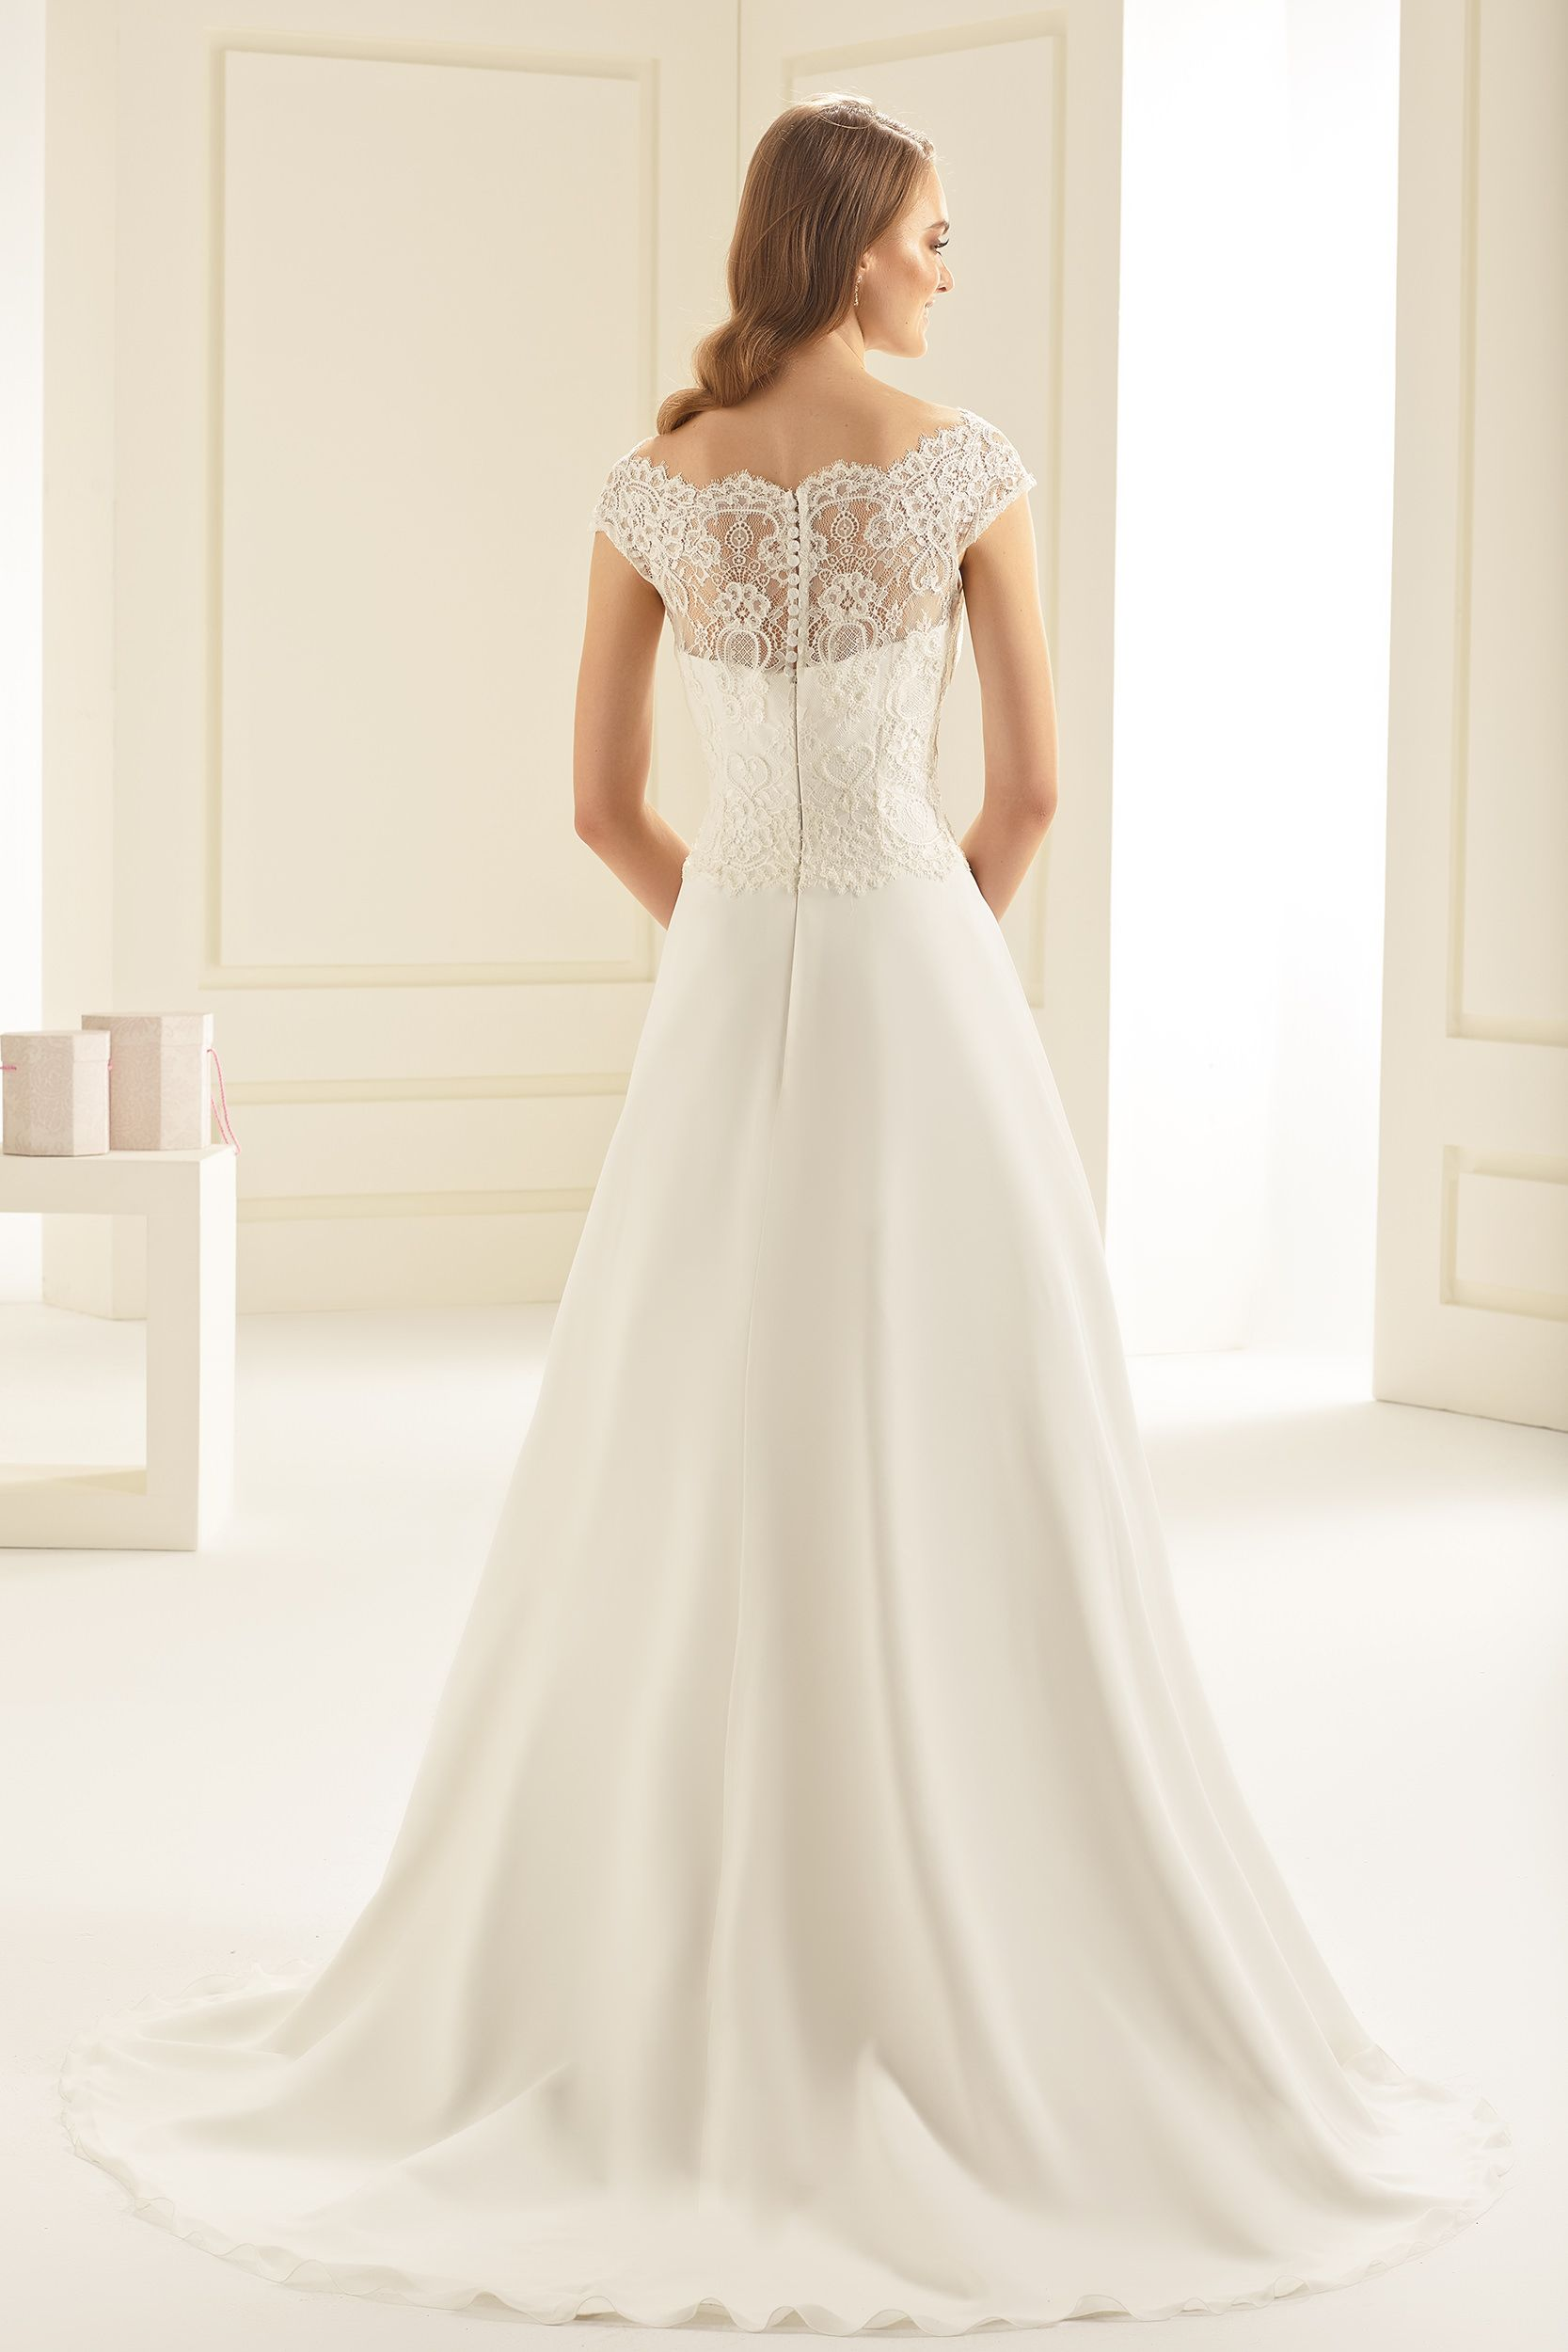 Trouwjurk Bianco Bridal Arizona | Pinterest - Boothals, Arizona en ...